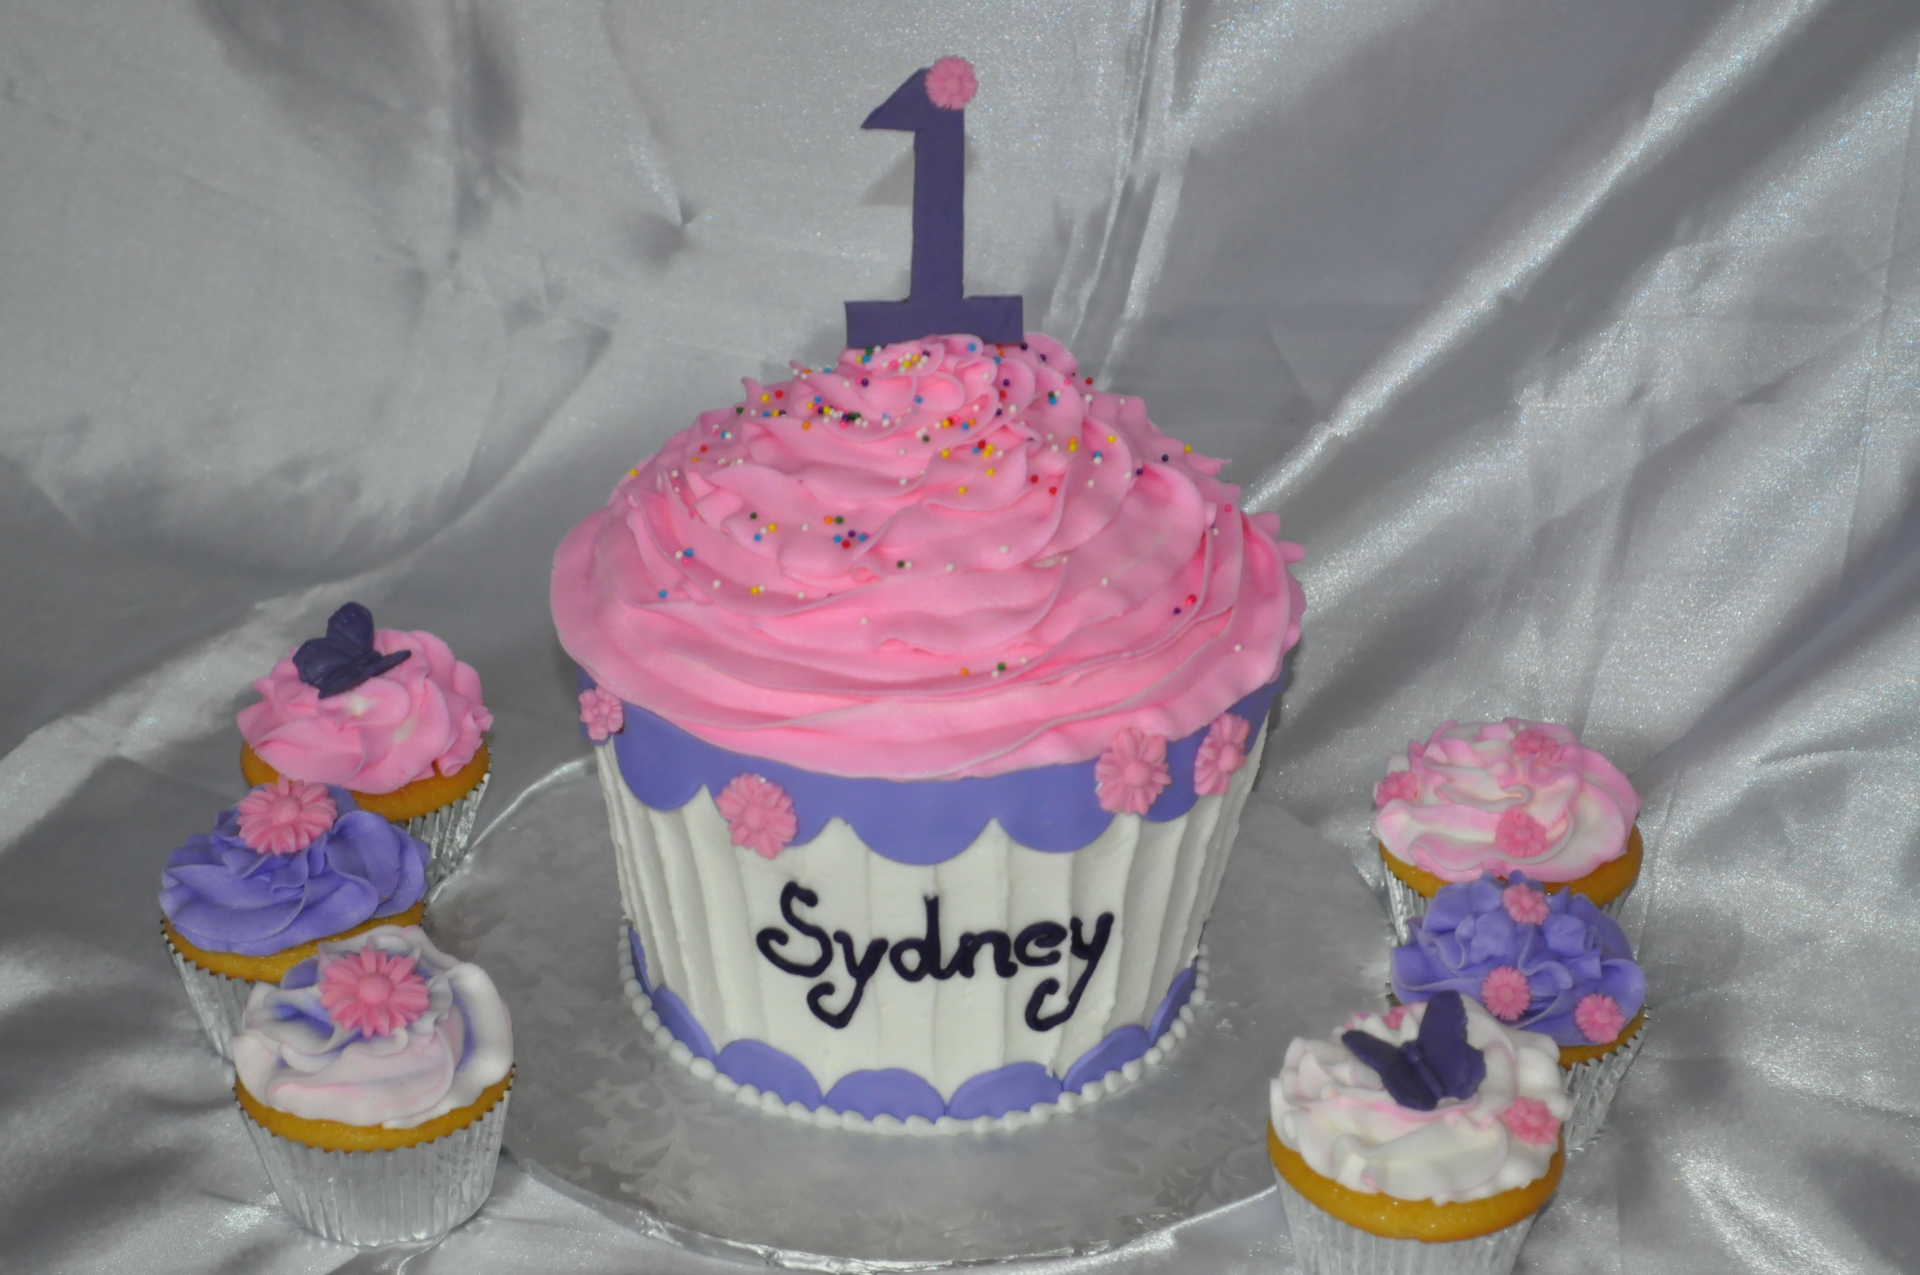 Giant cupcake, Big cupcake cake, 1st birthday cake